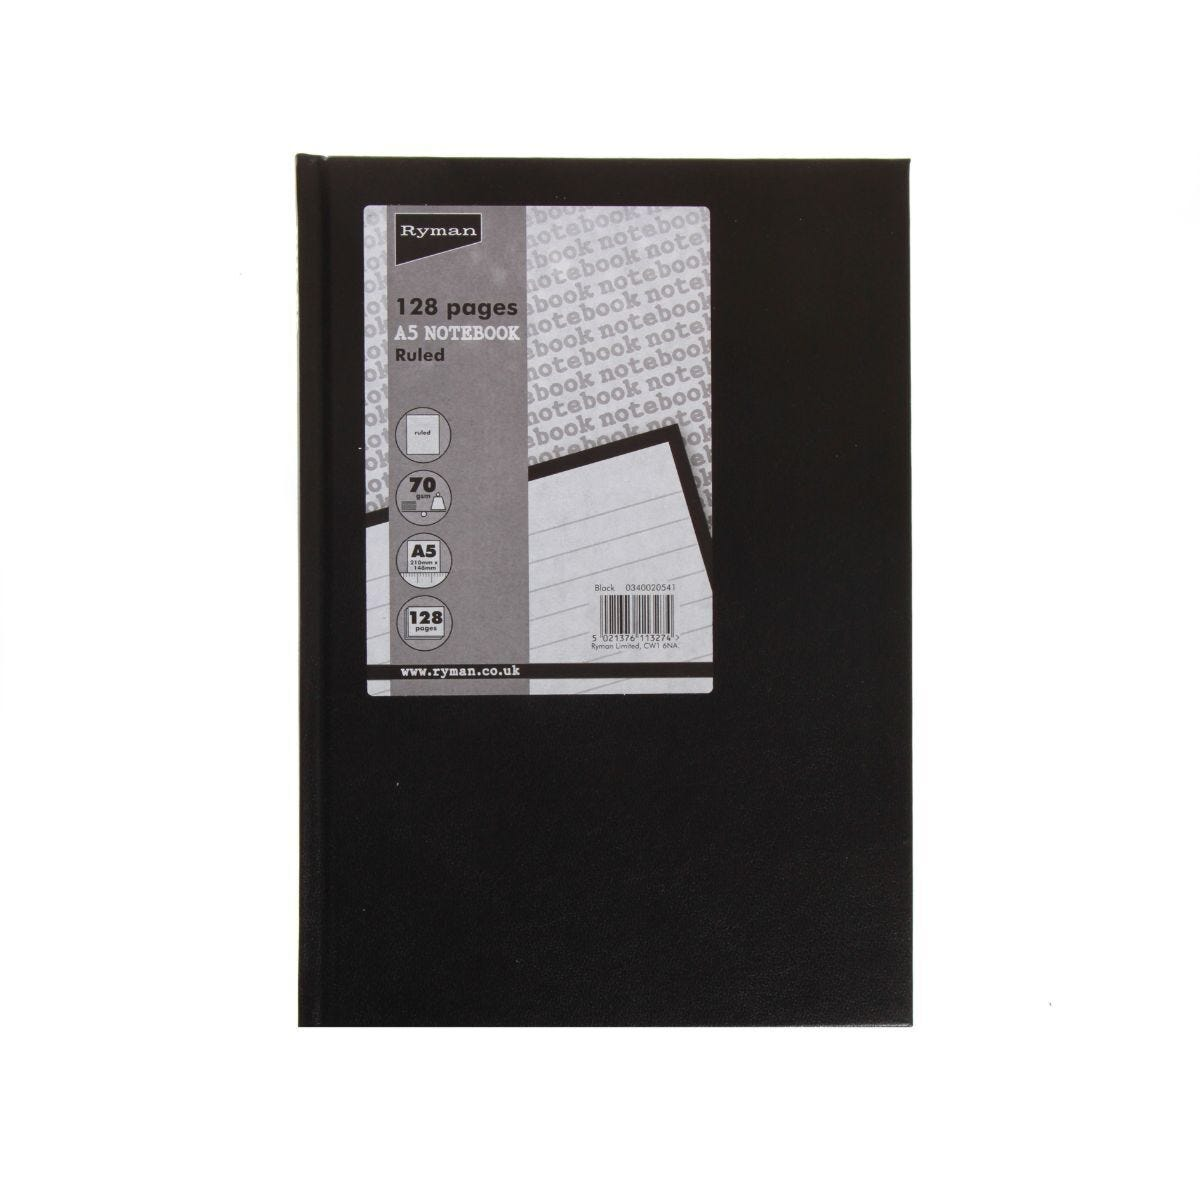 Ryman Casebound Memo Book Ruled A5 128 Pages 70gsm